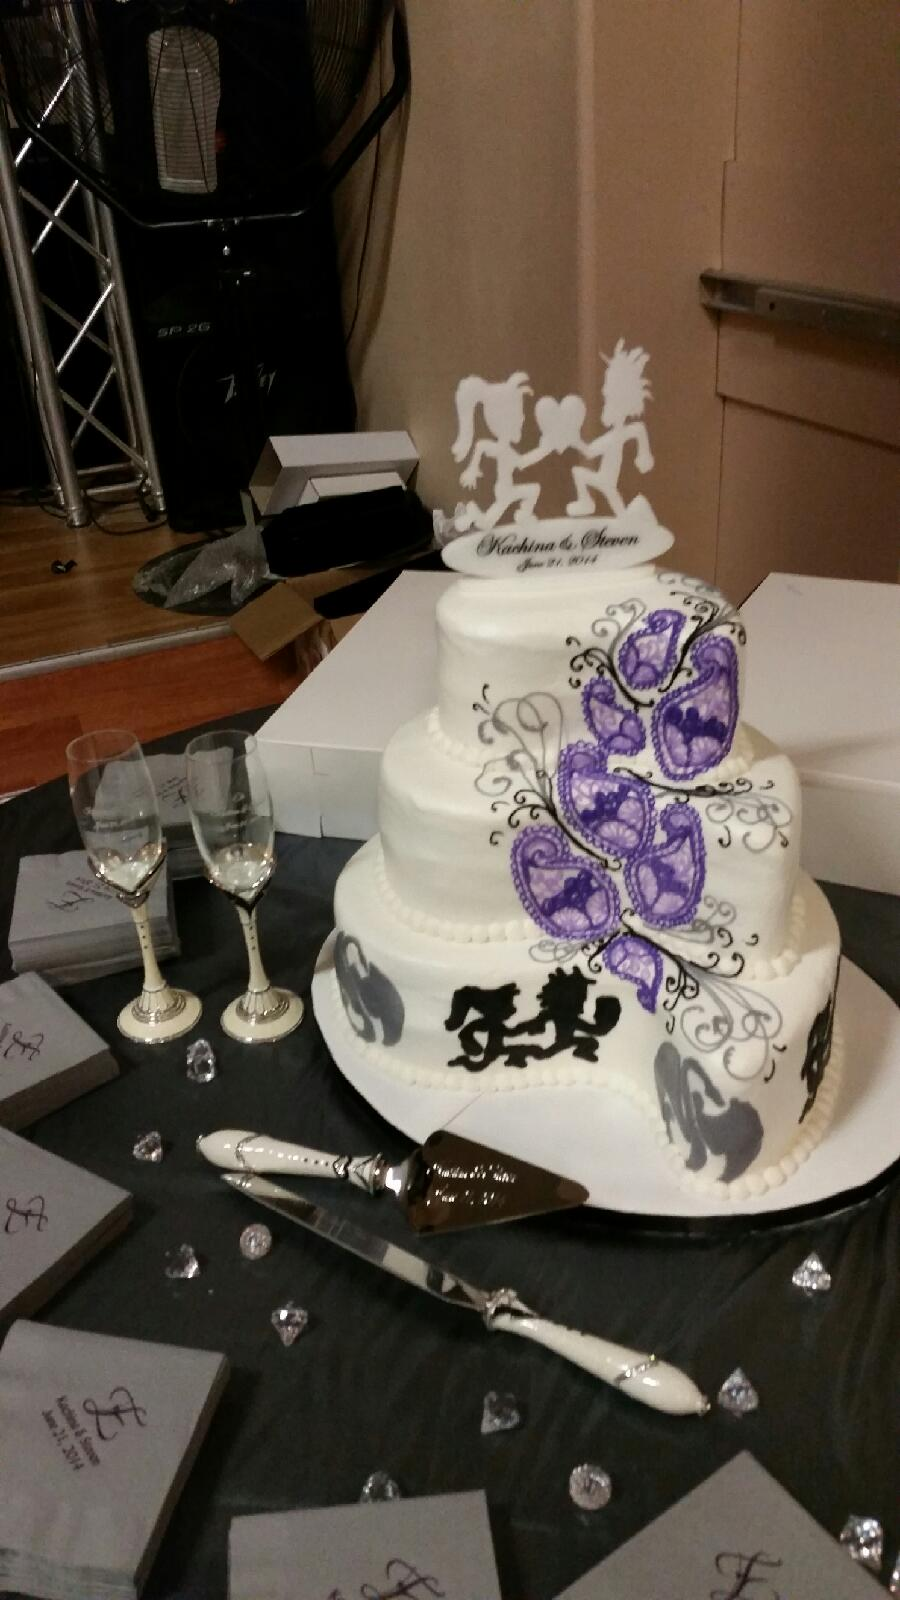 juggalo wedding cake 5000 Simple Wedding Cakes